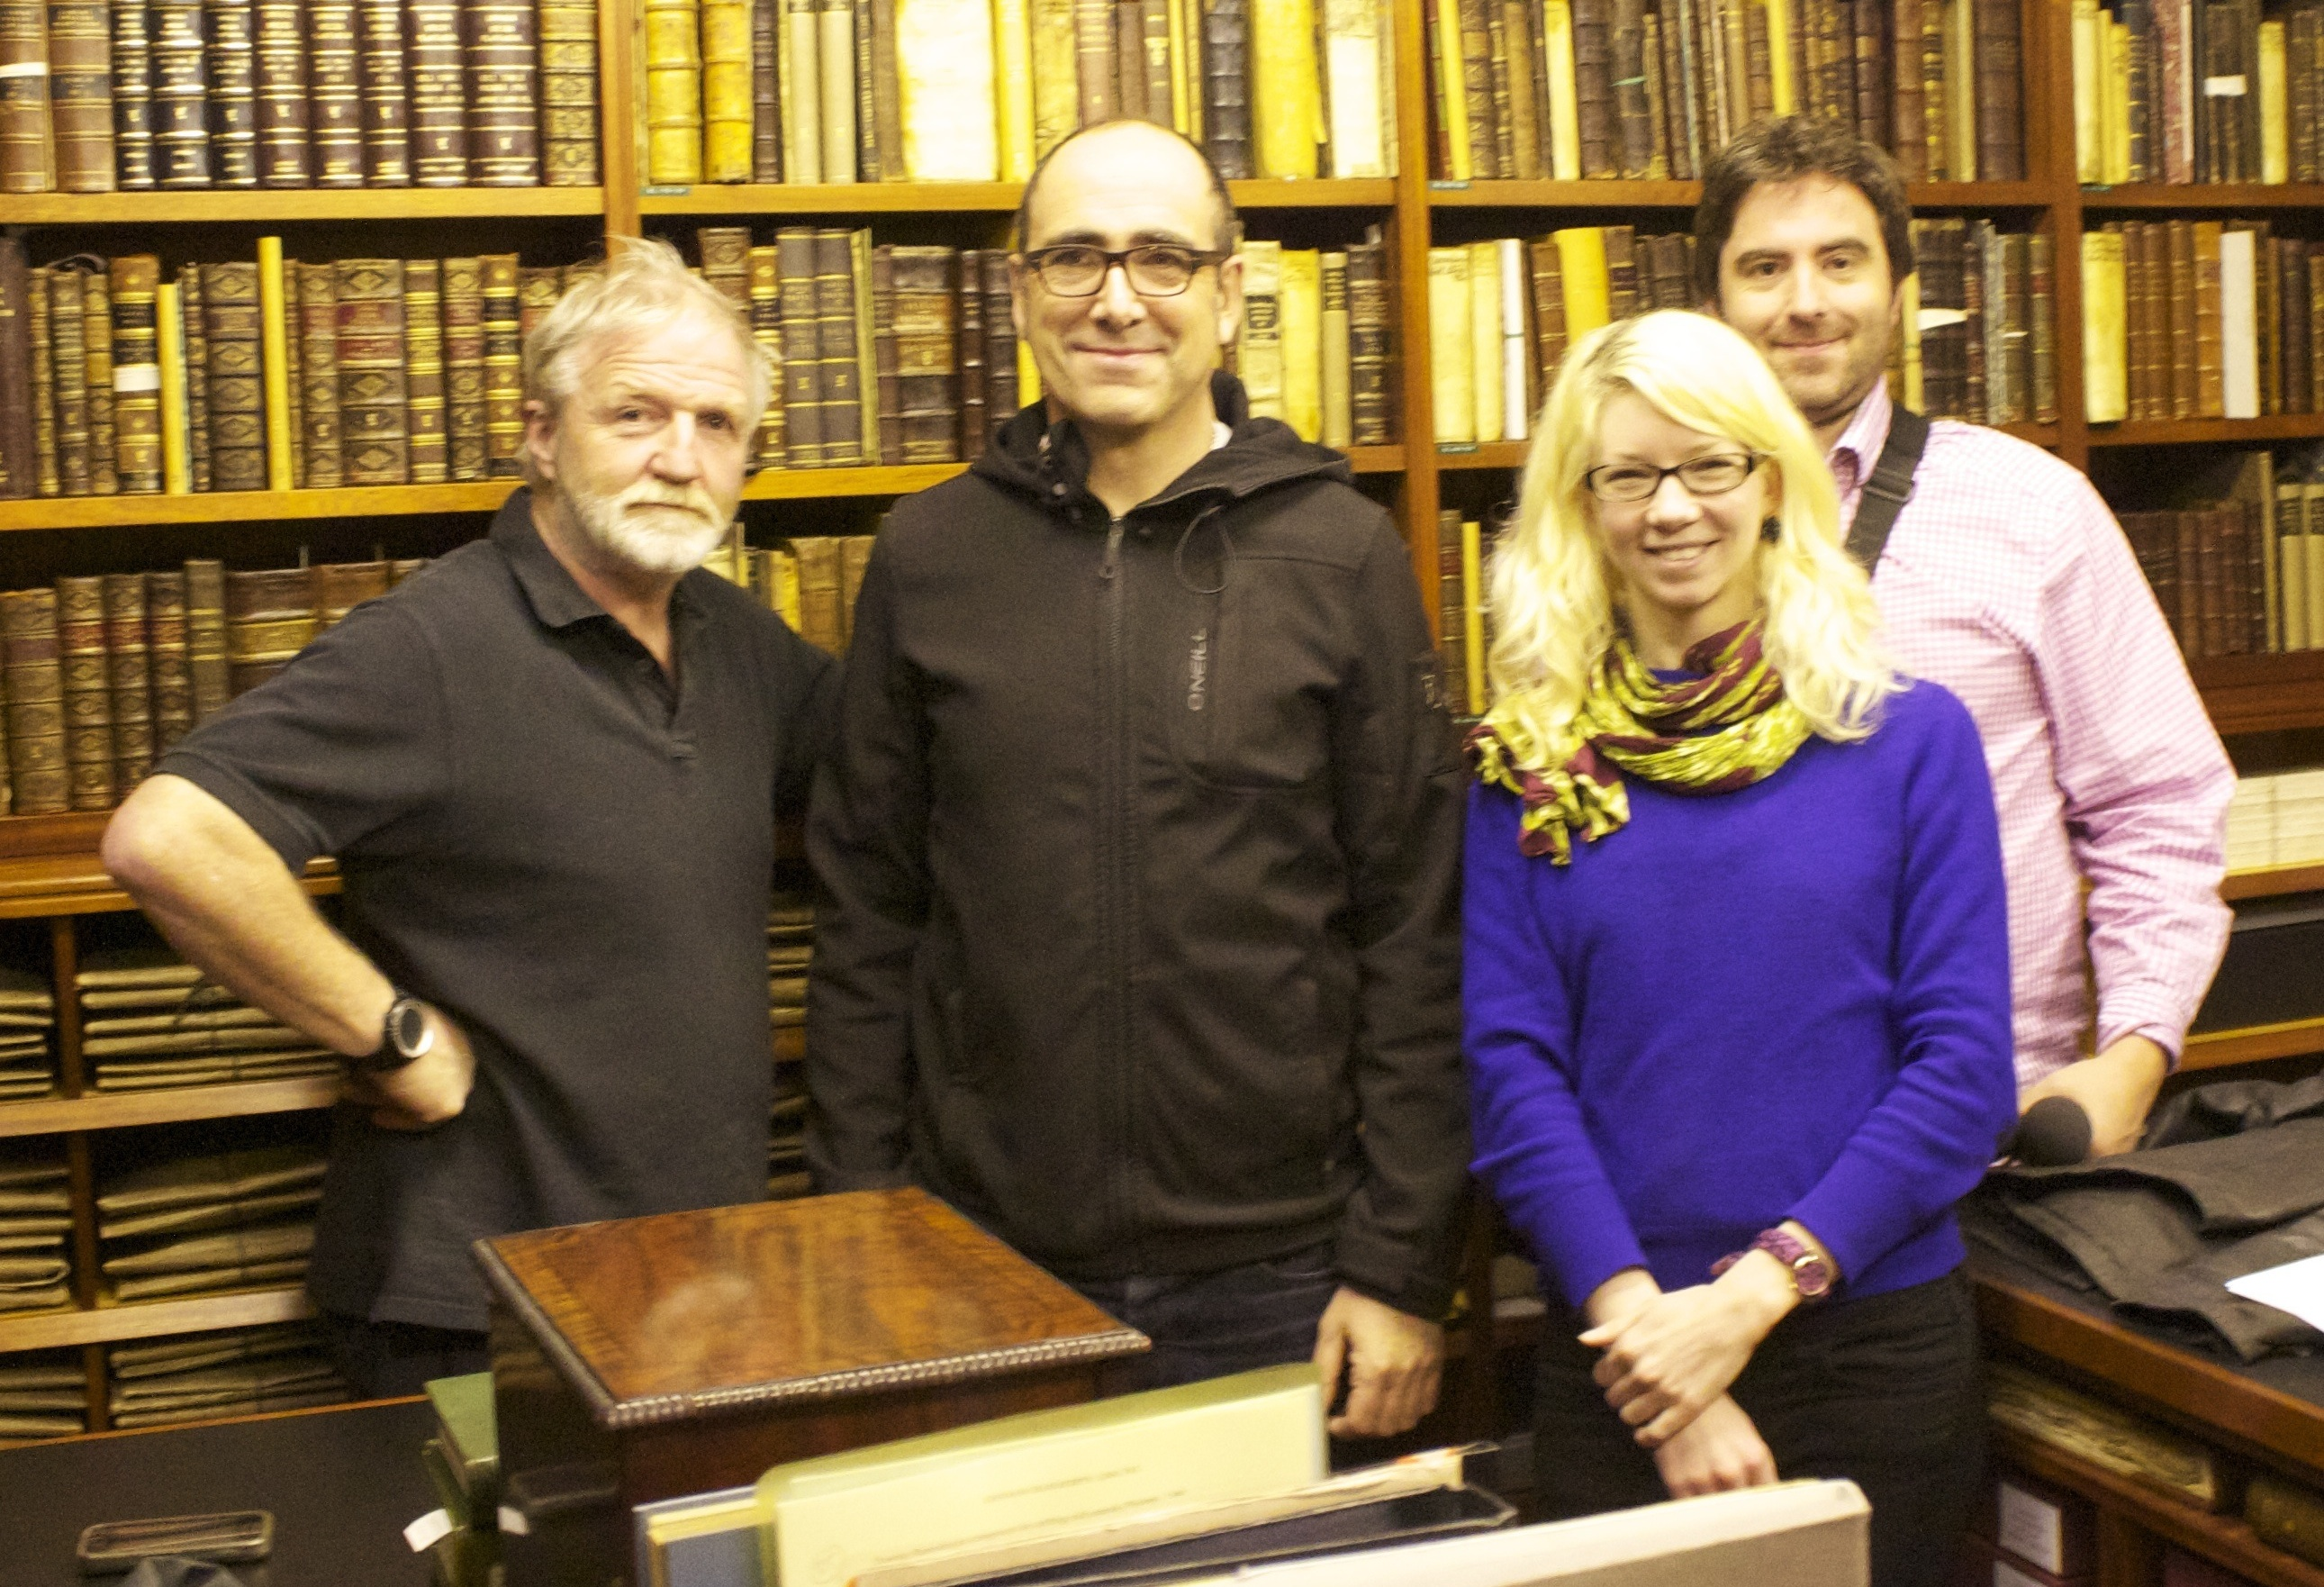 Team Insect (L-R - Dr. George McGavin, Ian Parkinson, Andrea Rangecroft, Micky Curling)